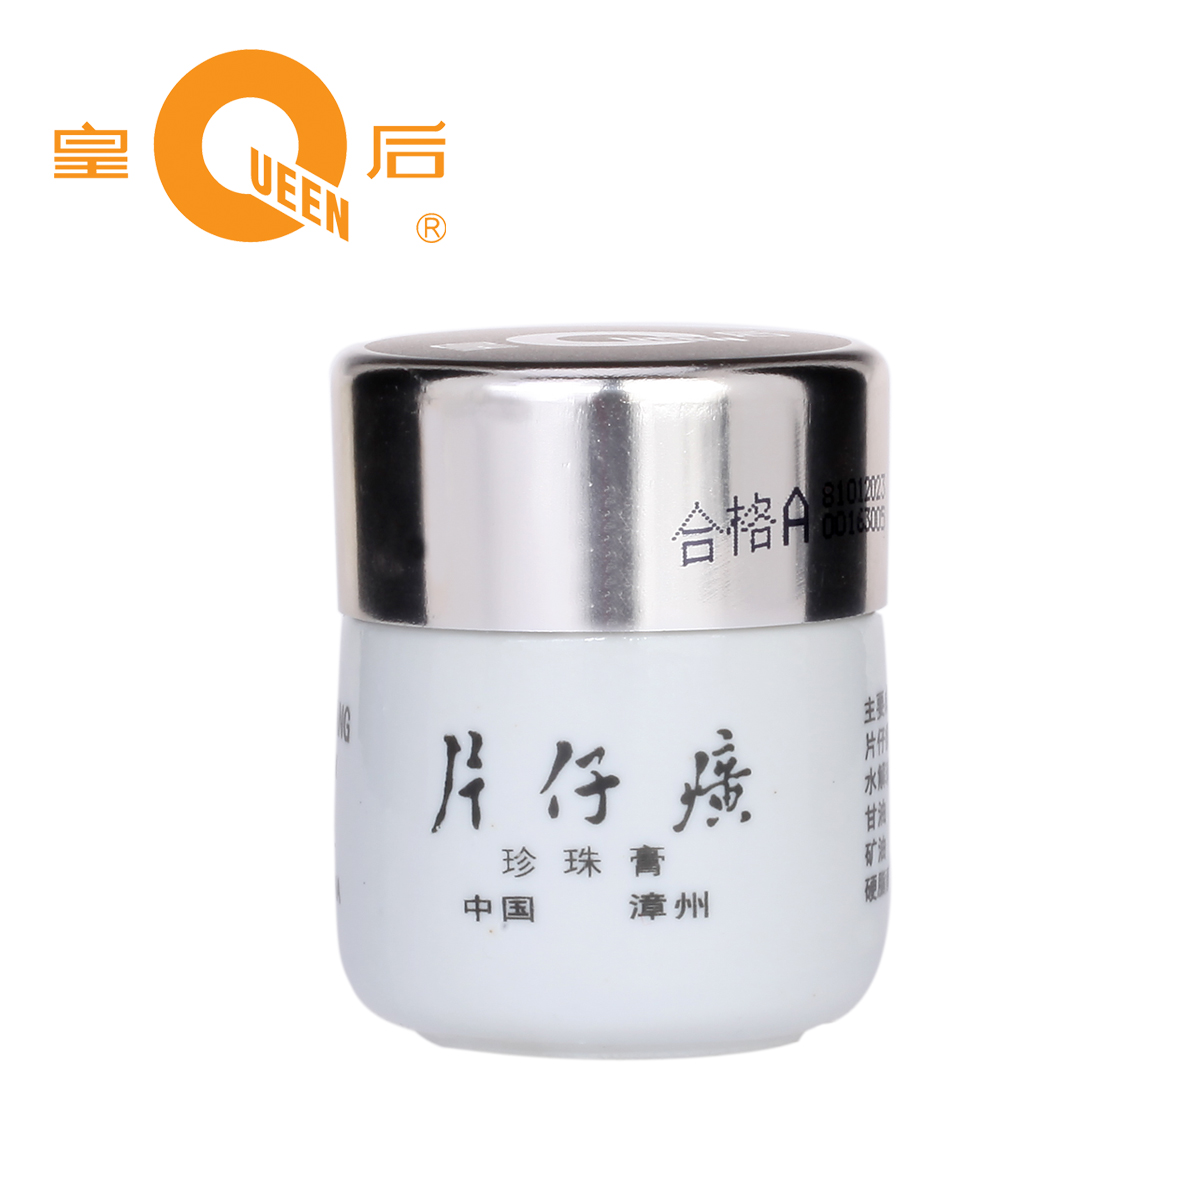 Pientzehuang Queen Pearl cream hydrating acne cream Freckle whitening emulsion print 20G product monopoly